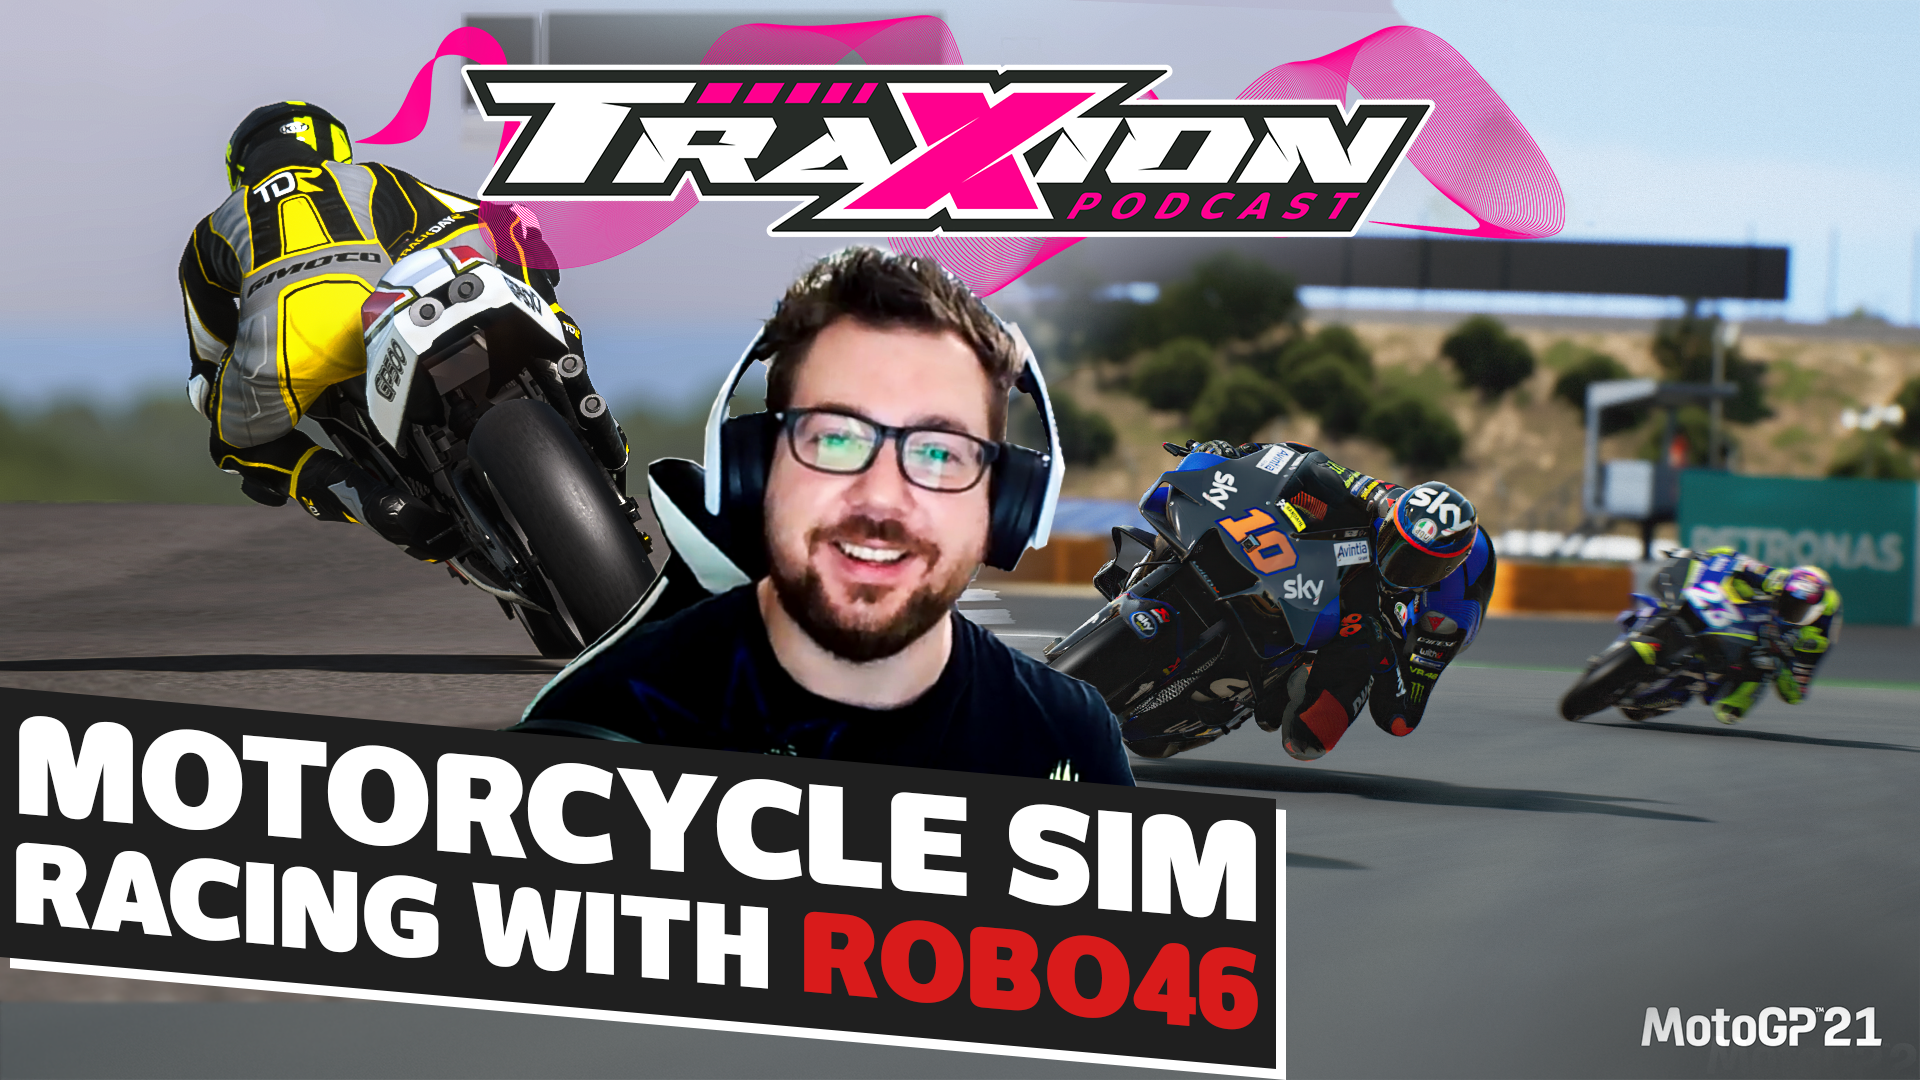 The current state of motorcycle sim racing with ROBO46   The Traxion.GG Podcast, Season 2, Episode 13